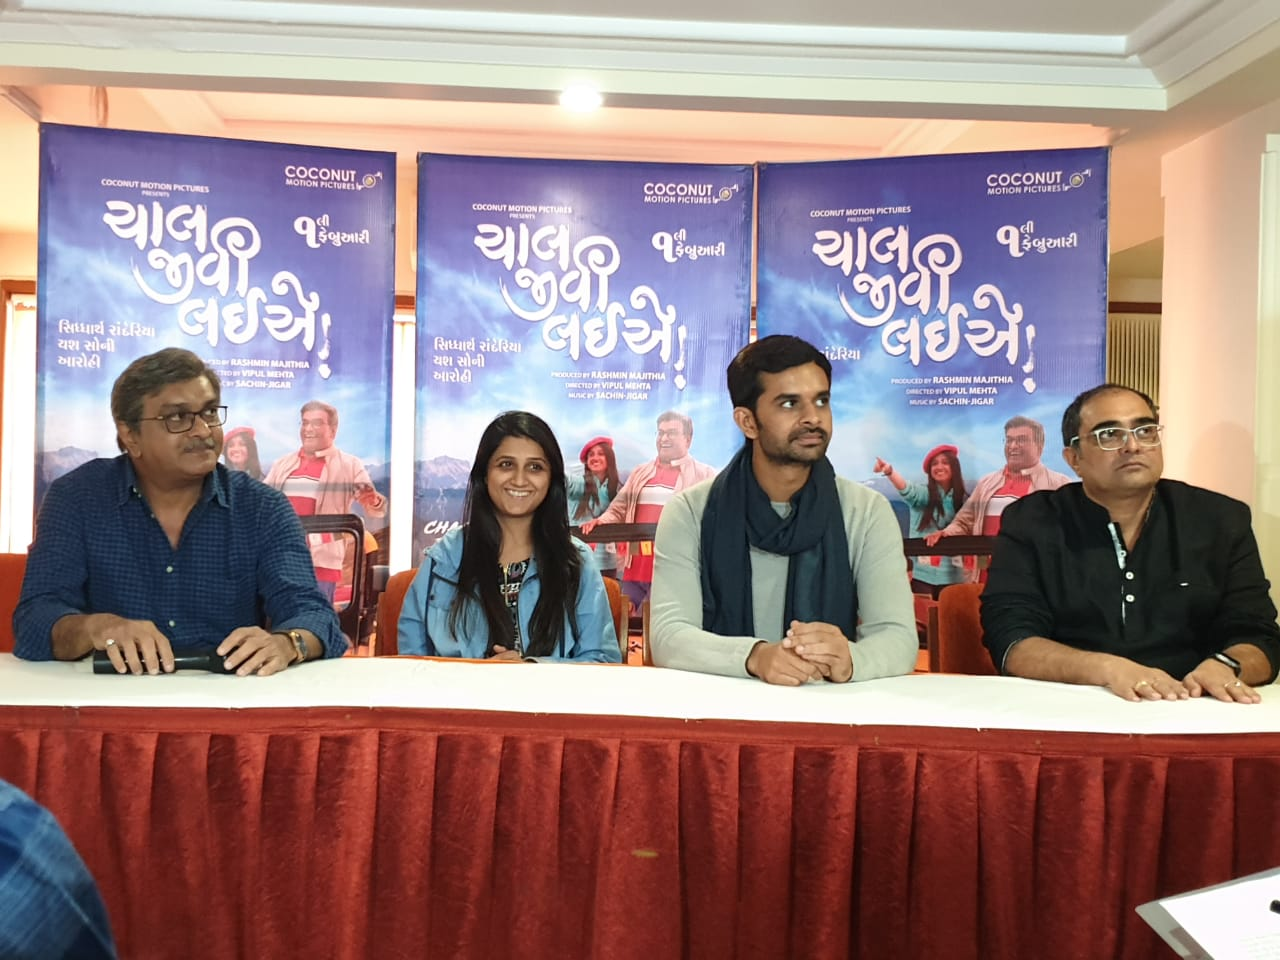 The road-trip film 'ChaalJeeviLaiye' ready to release on 1st February